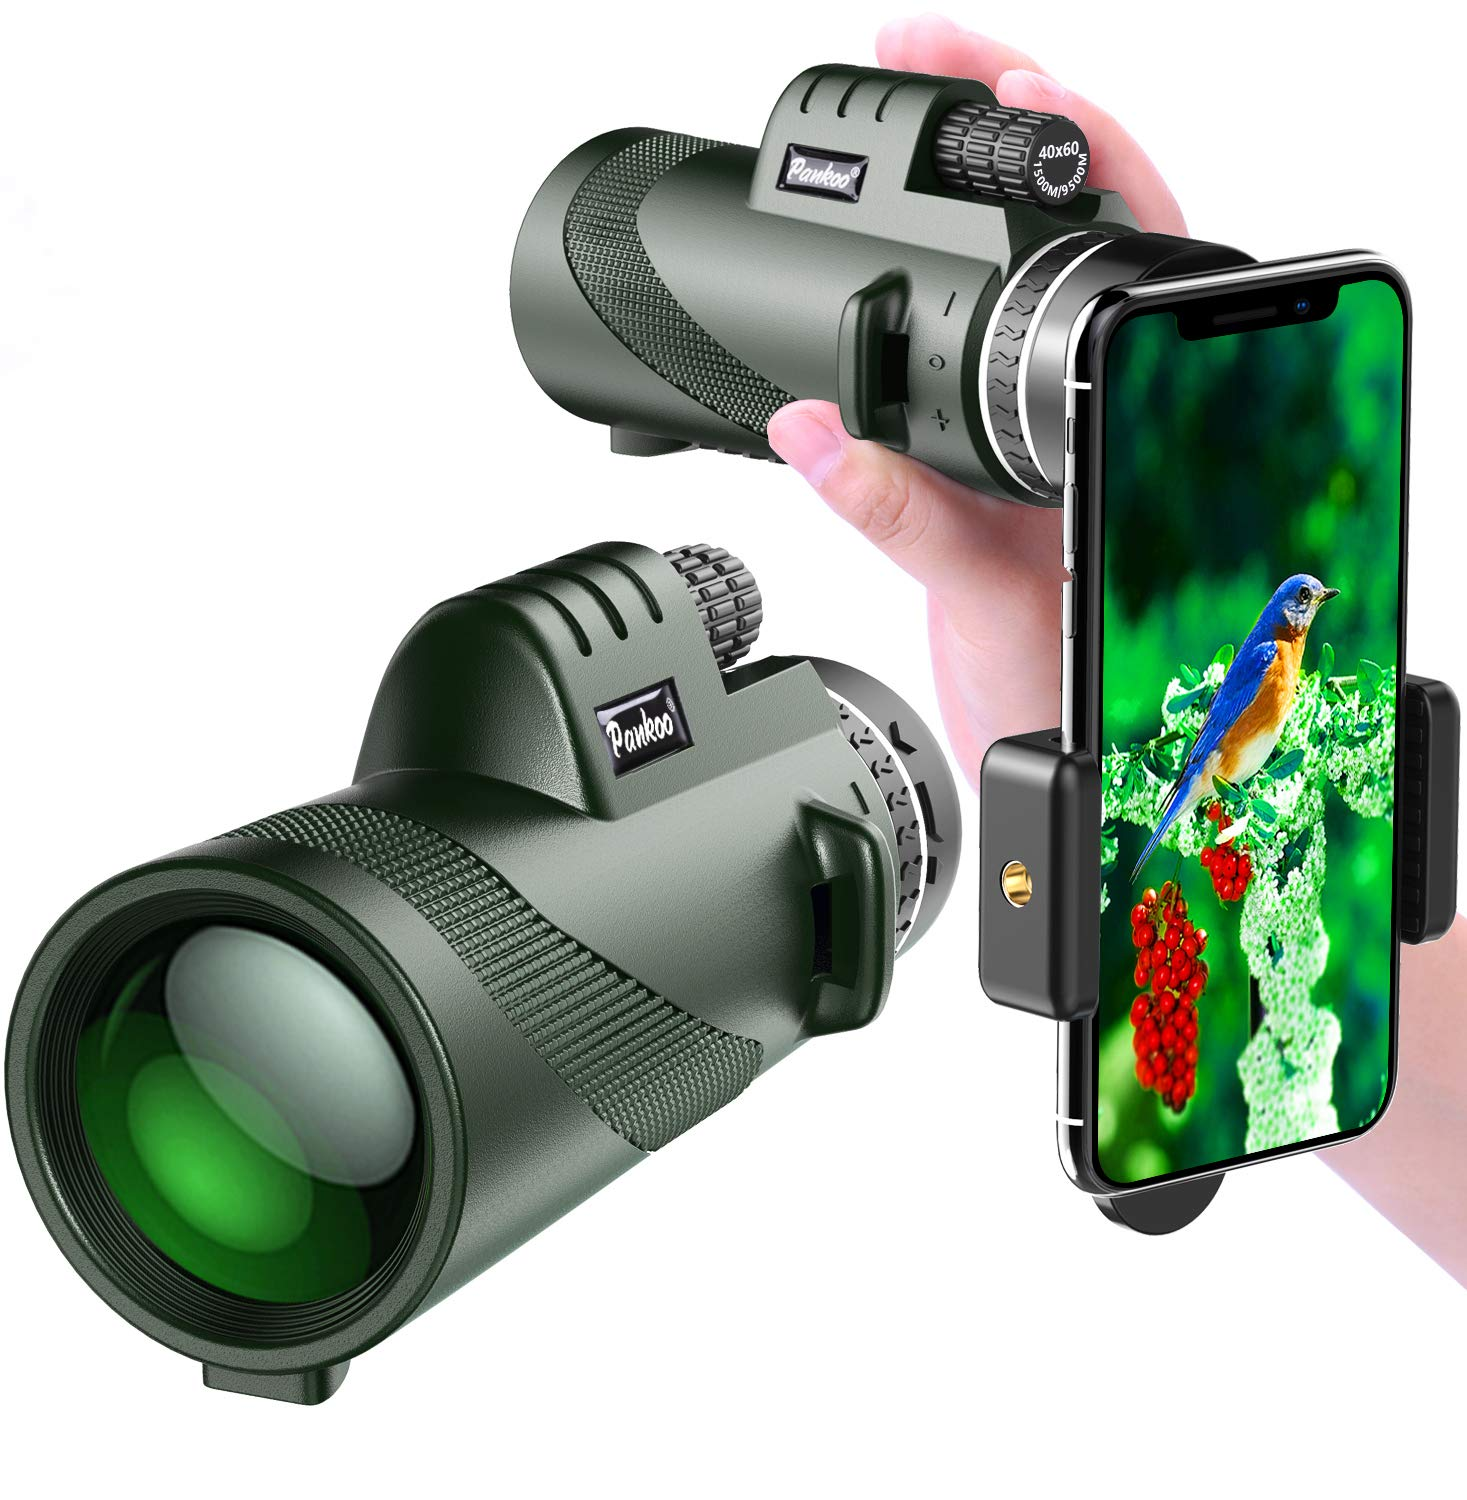 Pankoo Monocular Telescopes 40x60 High Power Prism Monocular HD Dual Focus Scope for Bird Watching,Wildlife,Traveling,Concert,Sports Game,Gifts for Adults with Phone Adapter&Tripod …